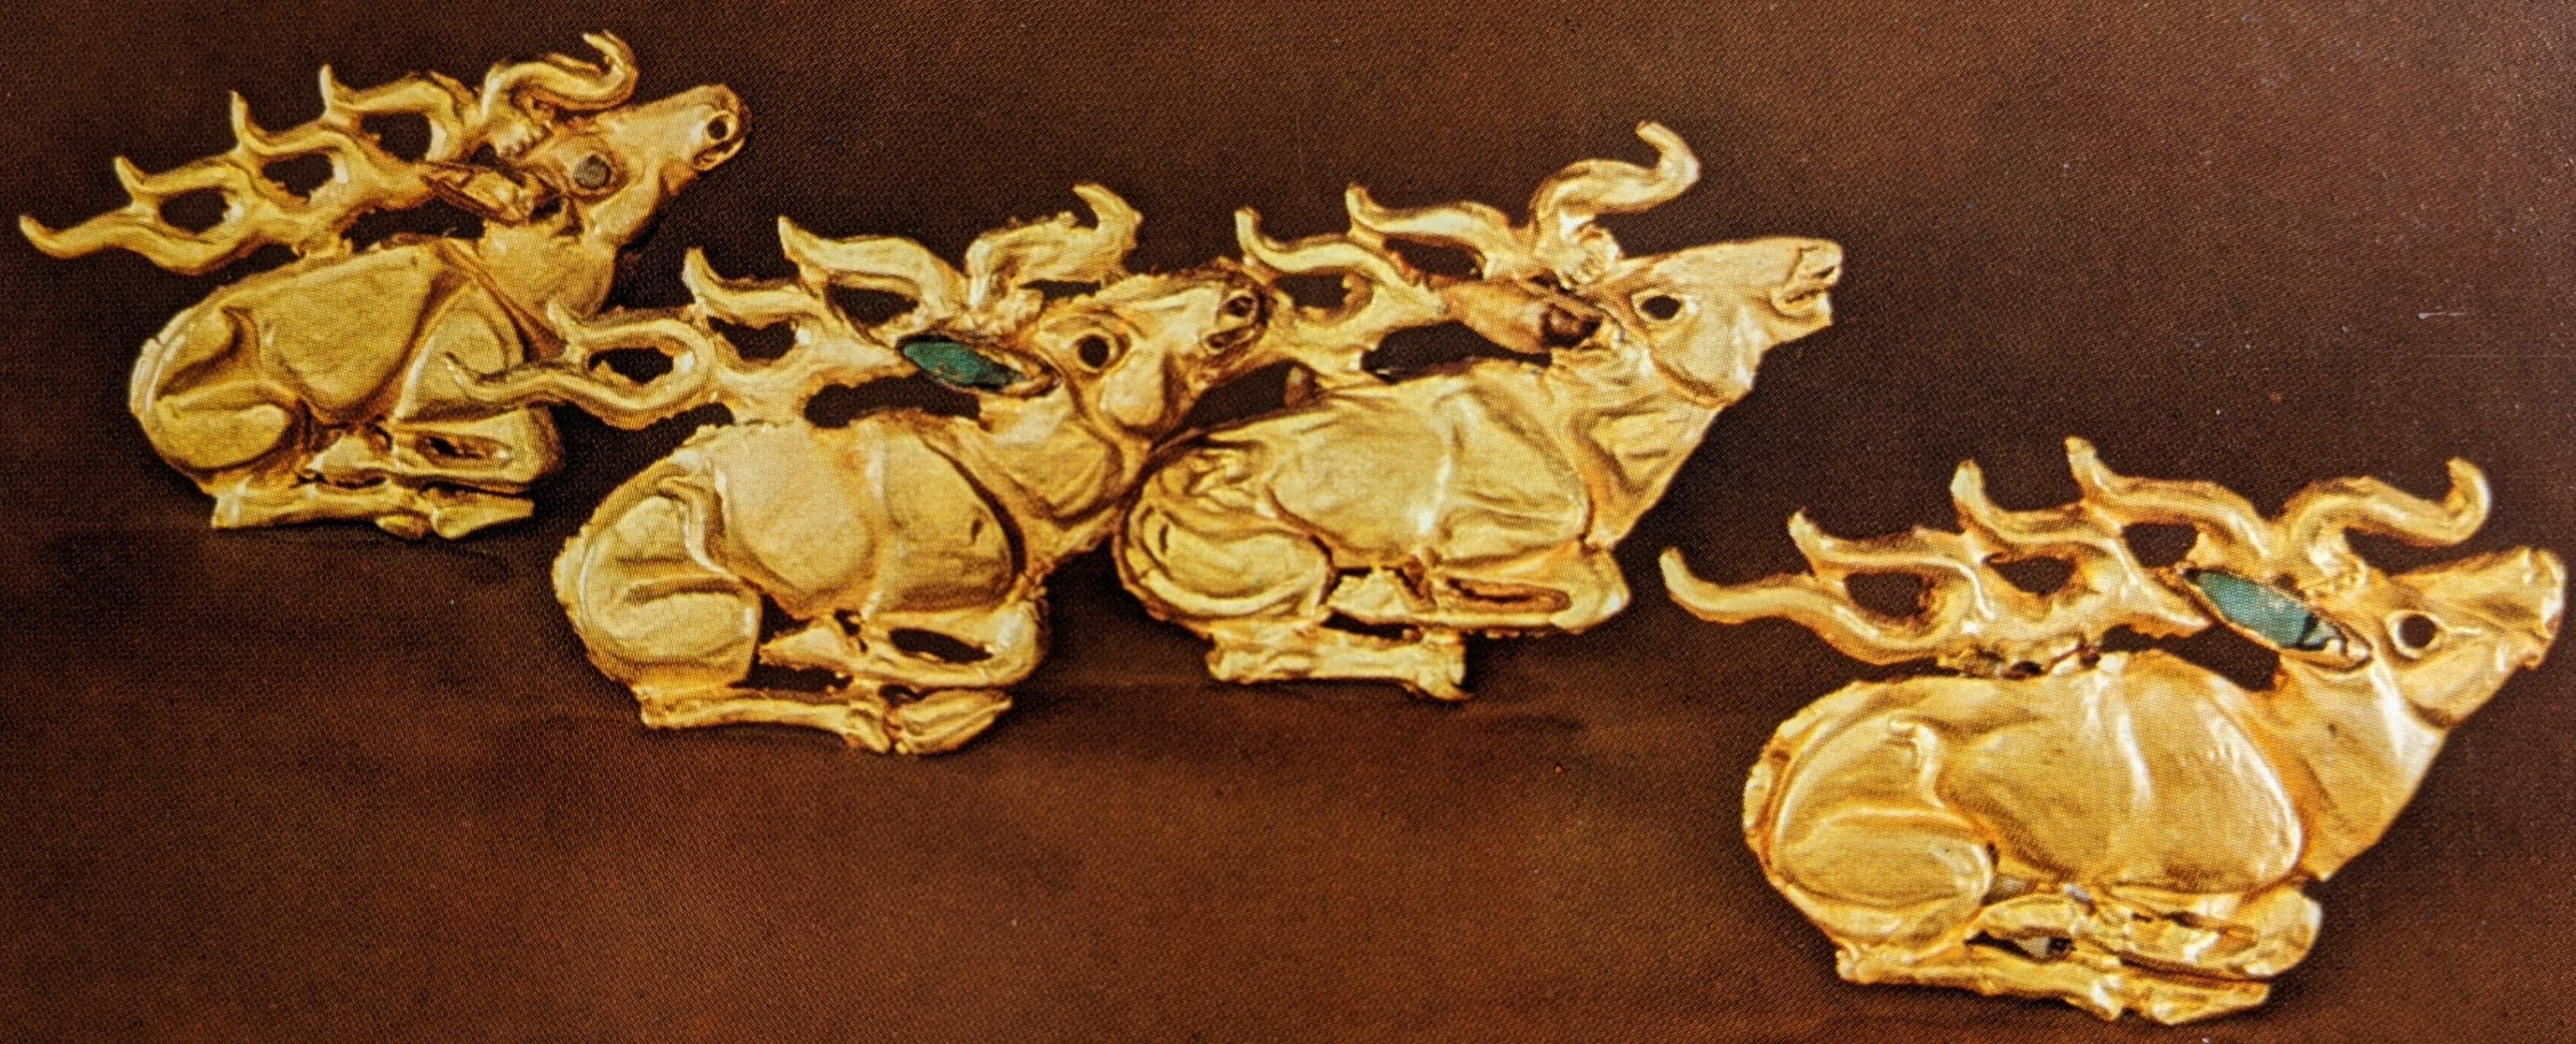 Gold stag plaques with turquoise inlay